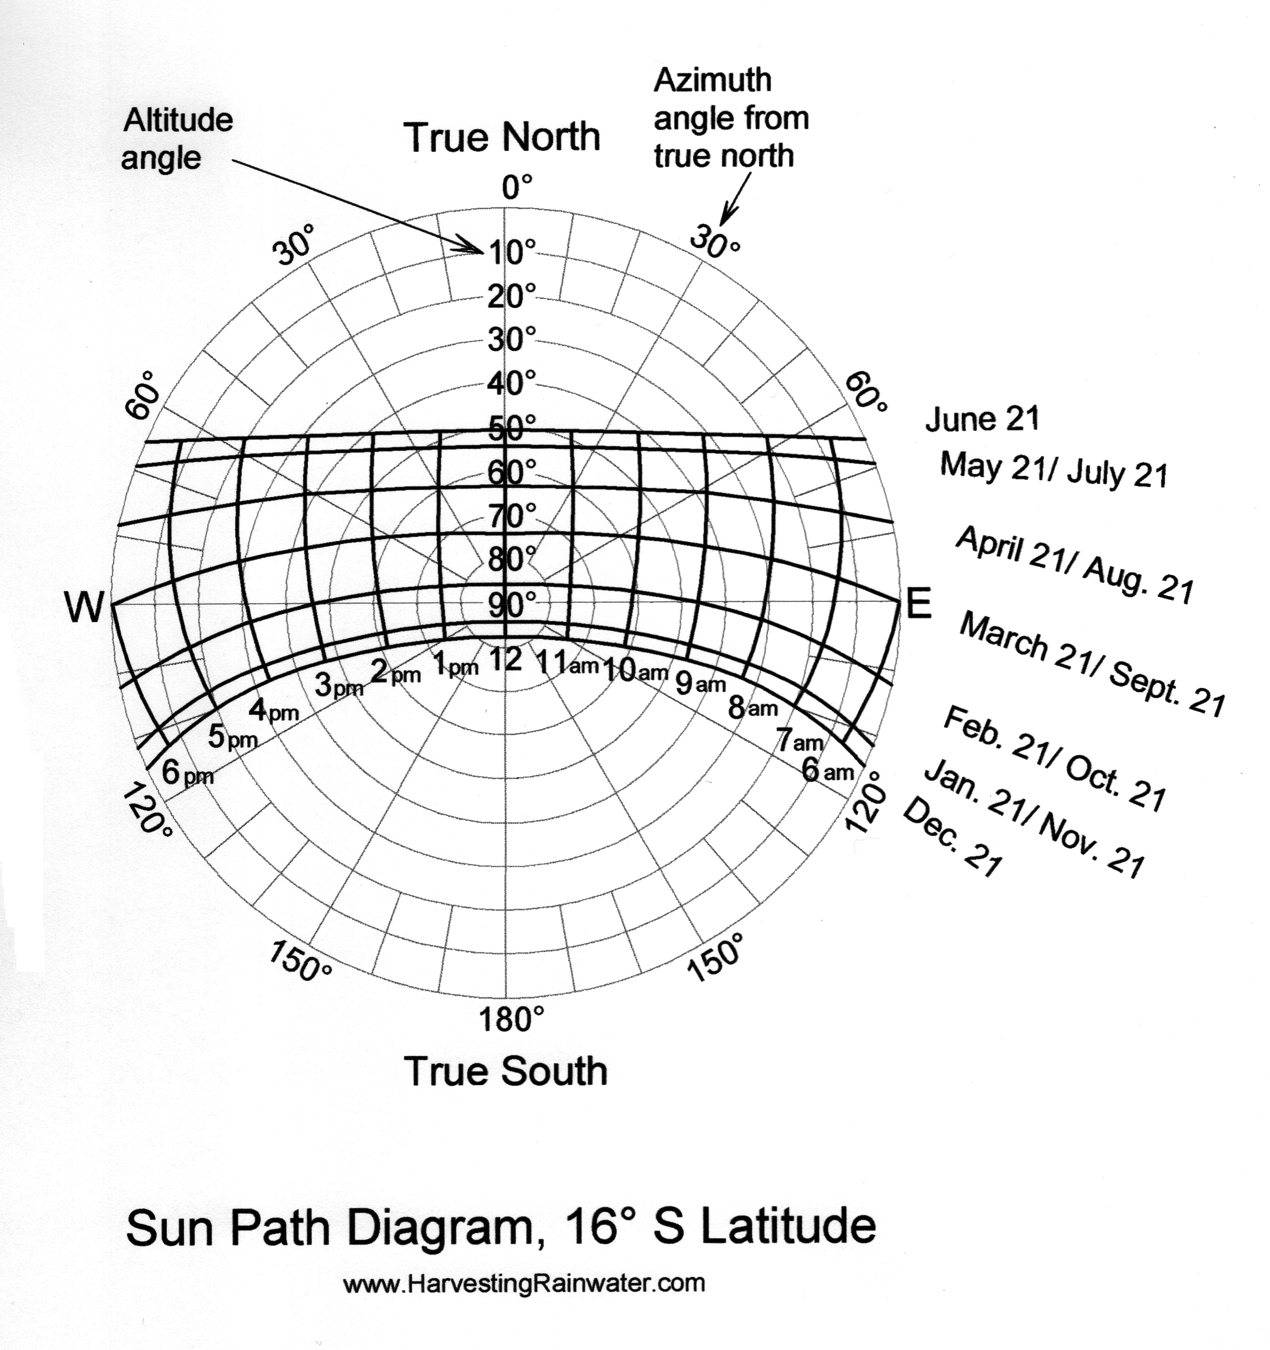 surface of the sun diagram